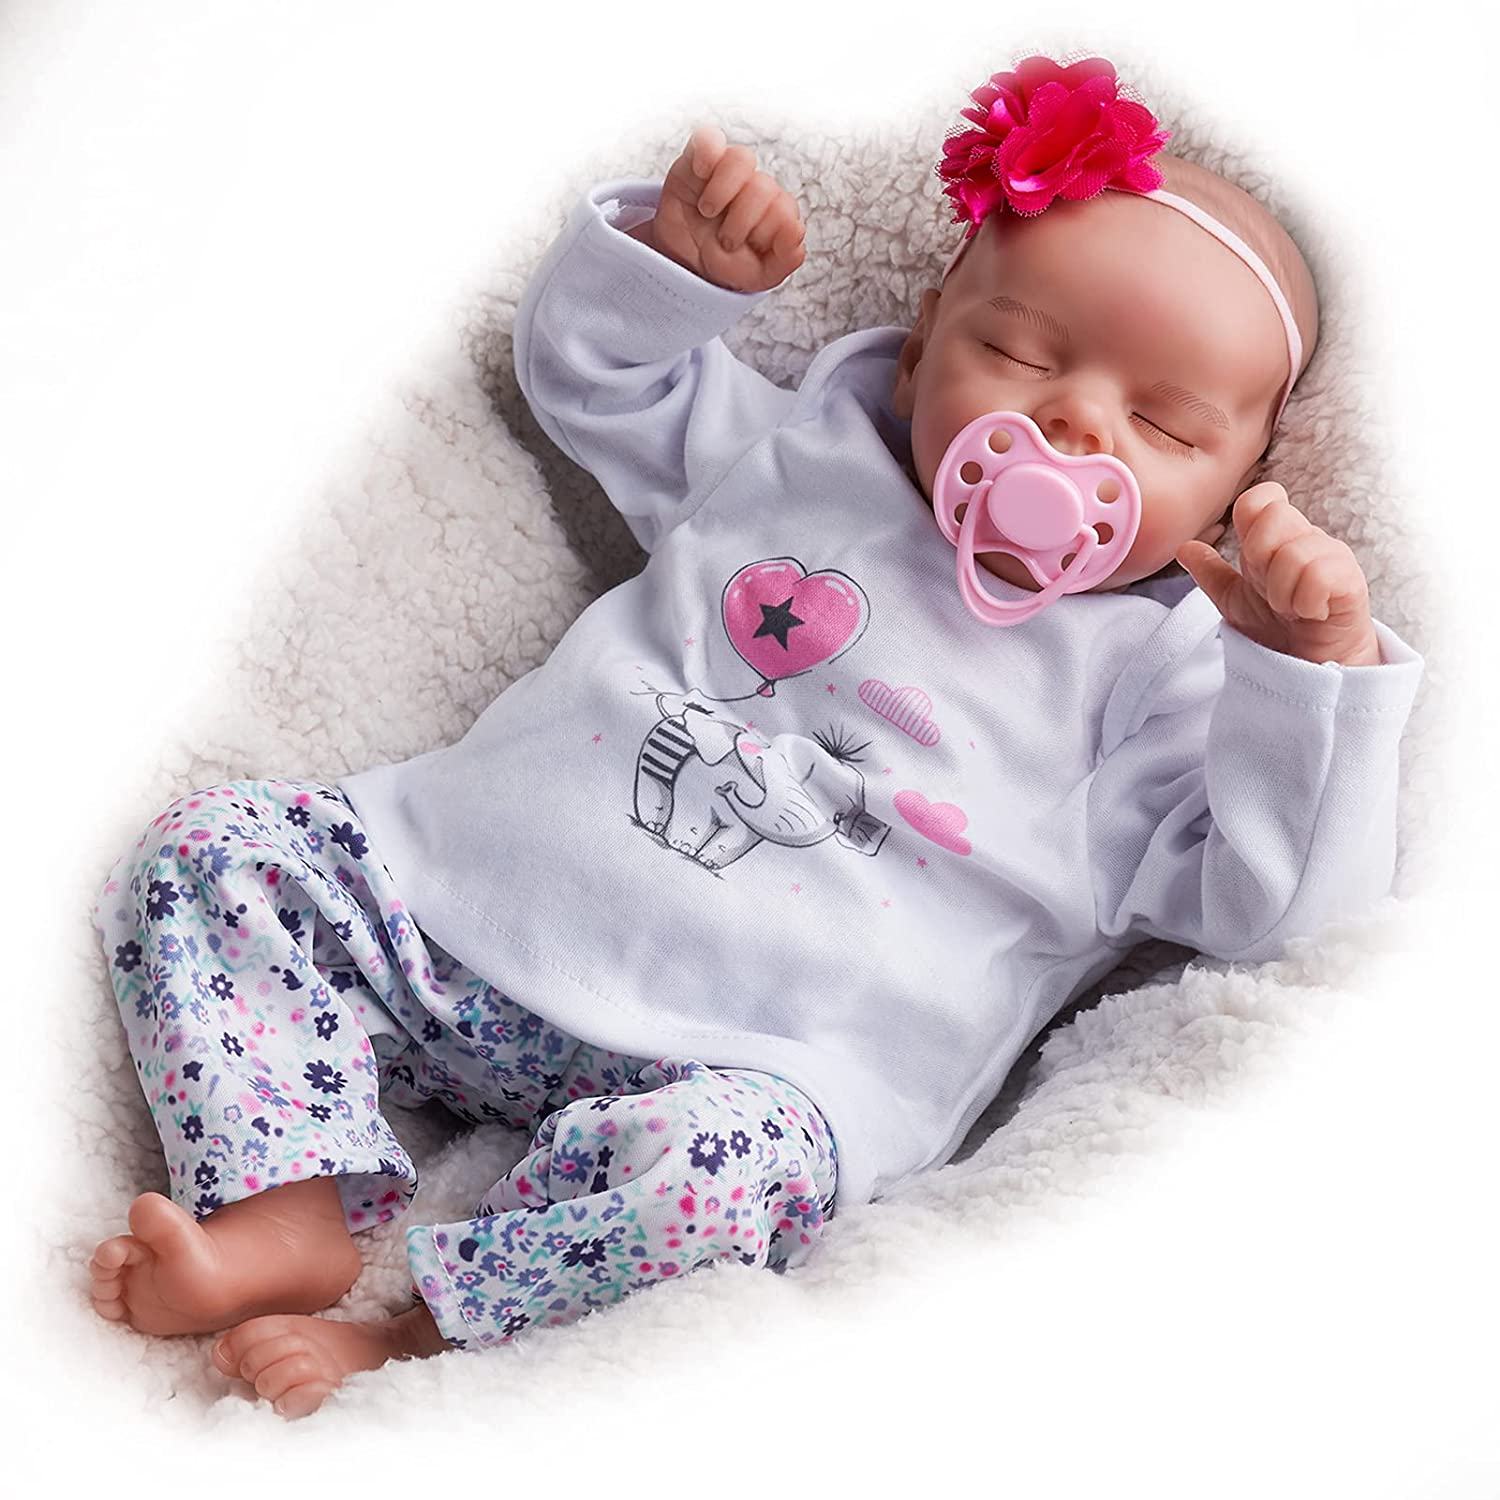 JIZHI Lifelike Factory outlet Reborn Baby Dolls Soft 17 Body Inch Realistic New products world's highest quality popular